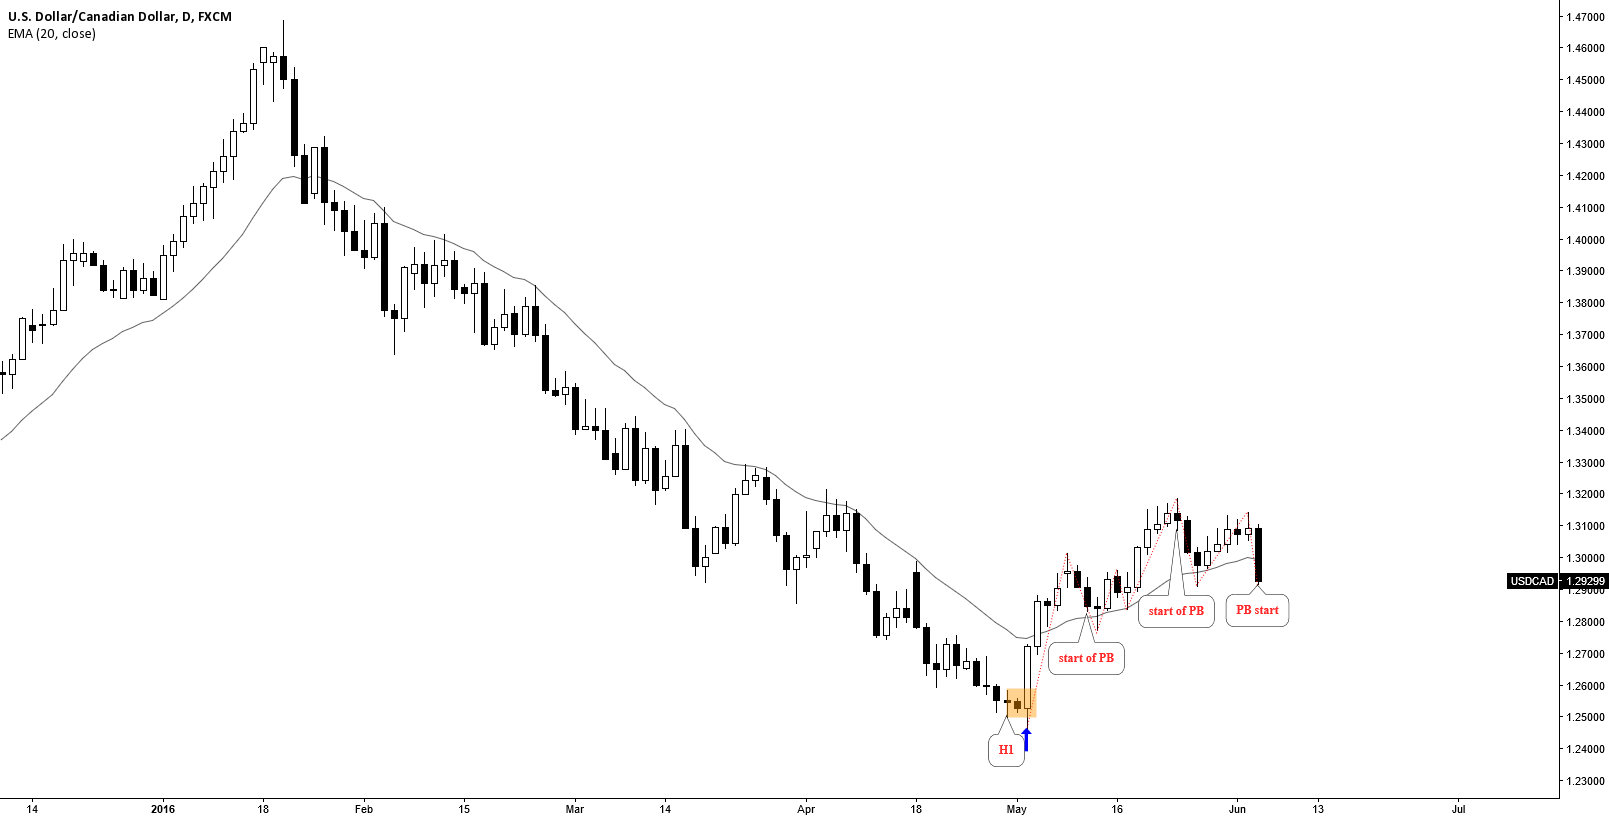 USDCAD: PB START. NOT A TREND CHANGE. WAIT FOR H1 TO JOIN TREND